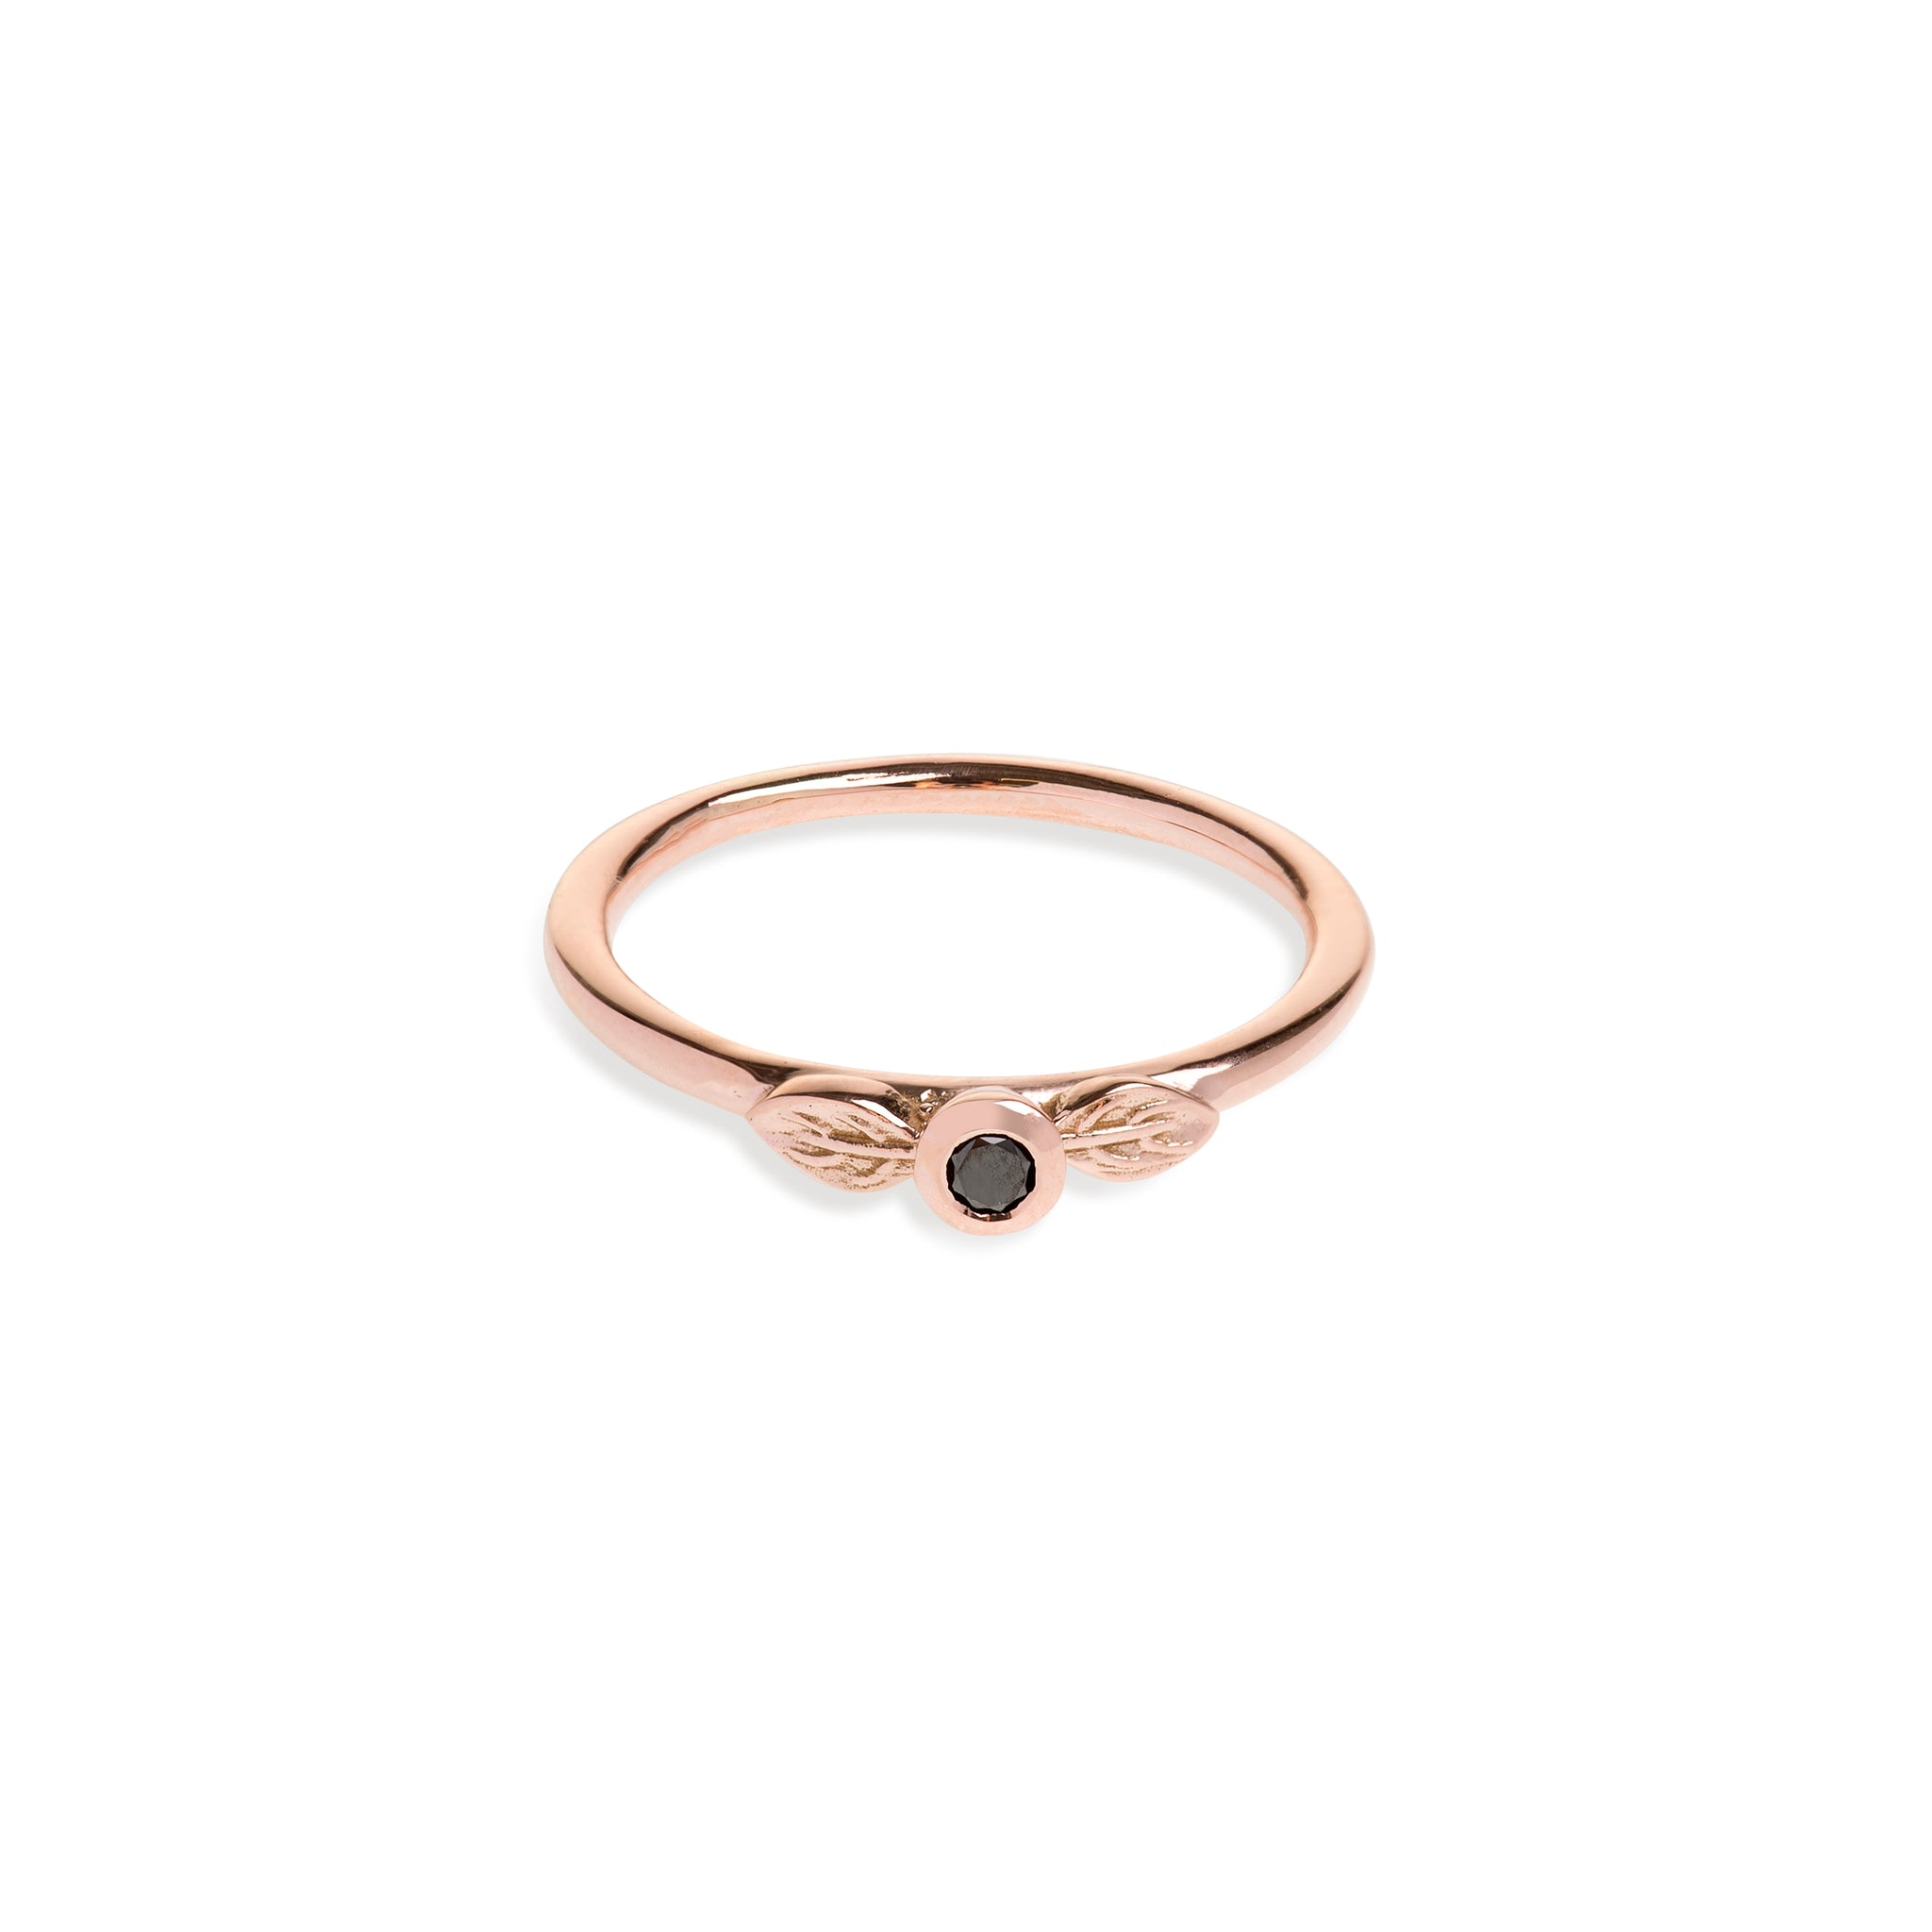 Rose Gold Two Leaf Ring With Black Diamond